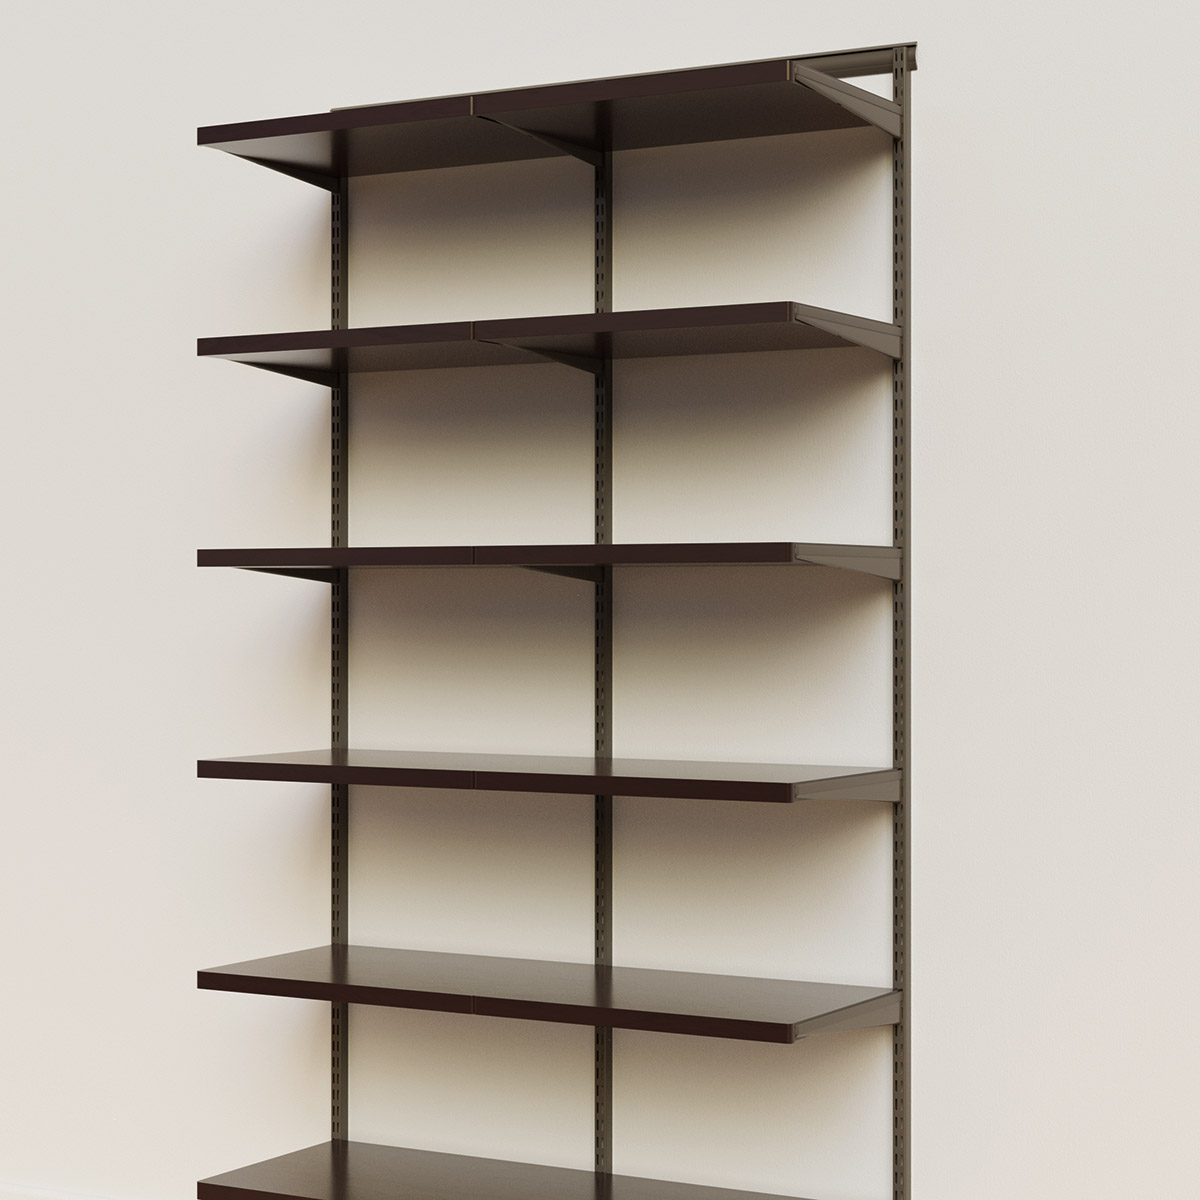 Elfa Décor 4' Graphite & Walnut Basic Shelving Units for Anywhere